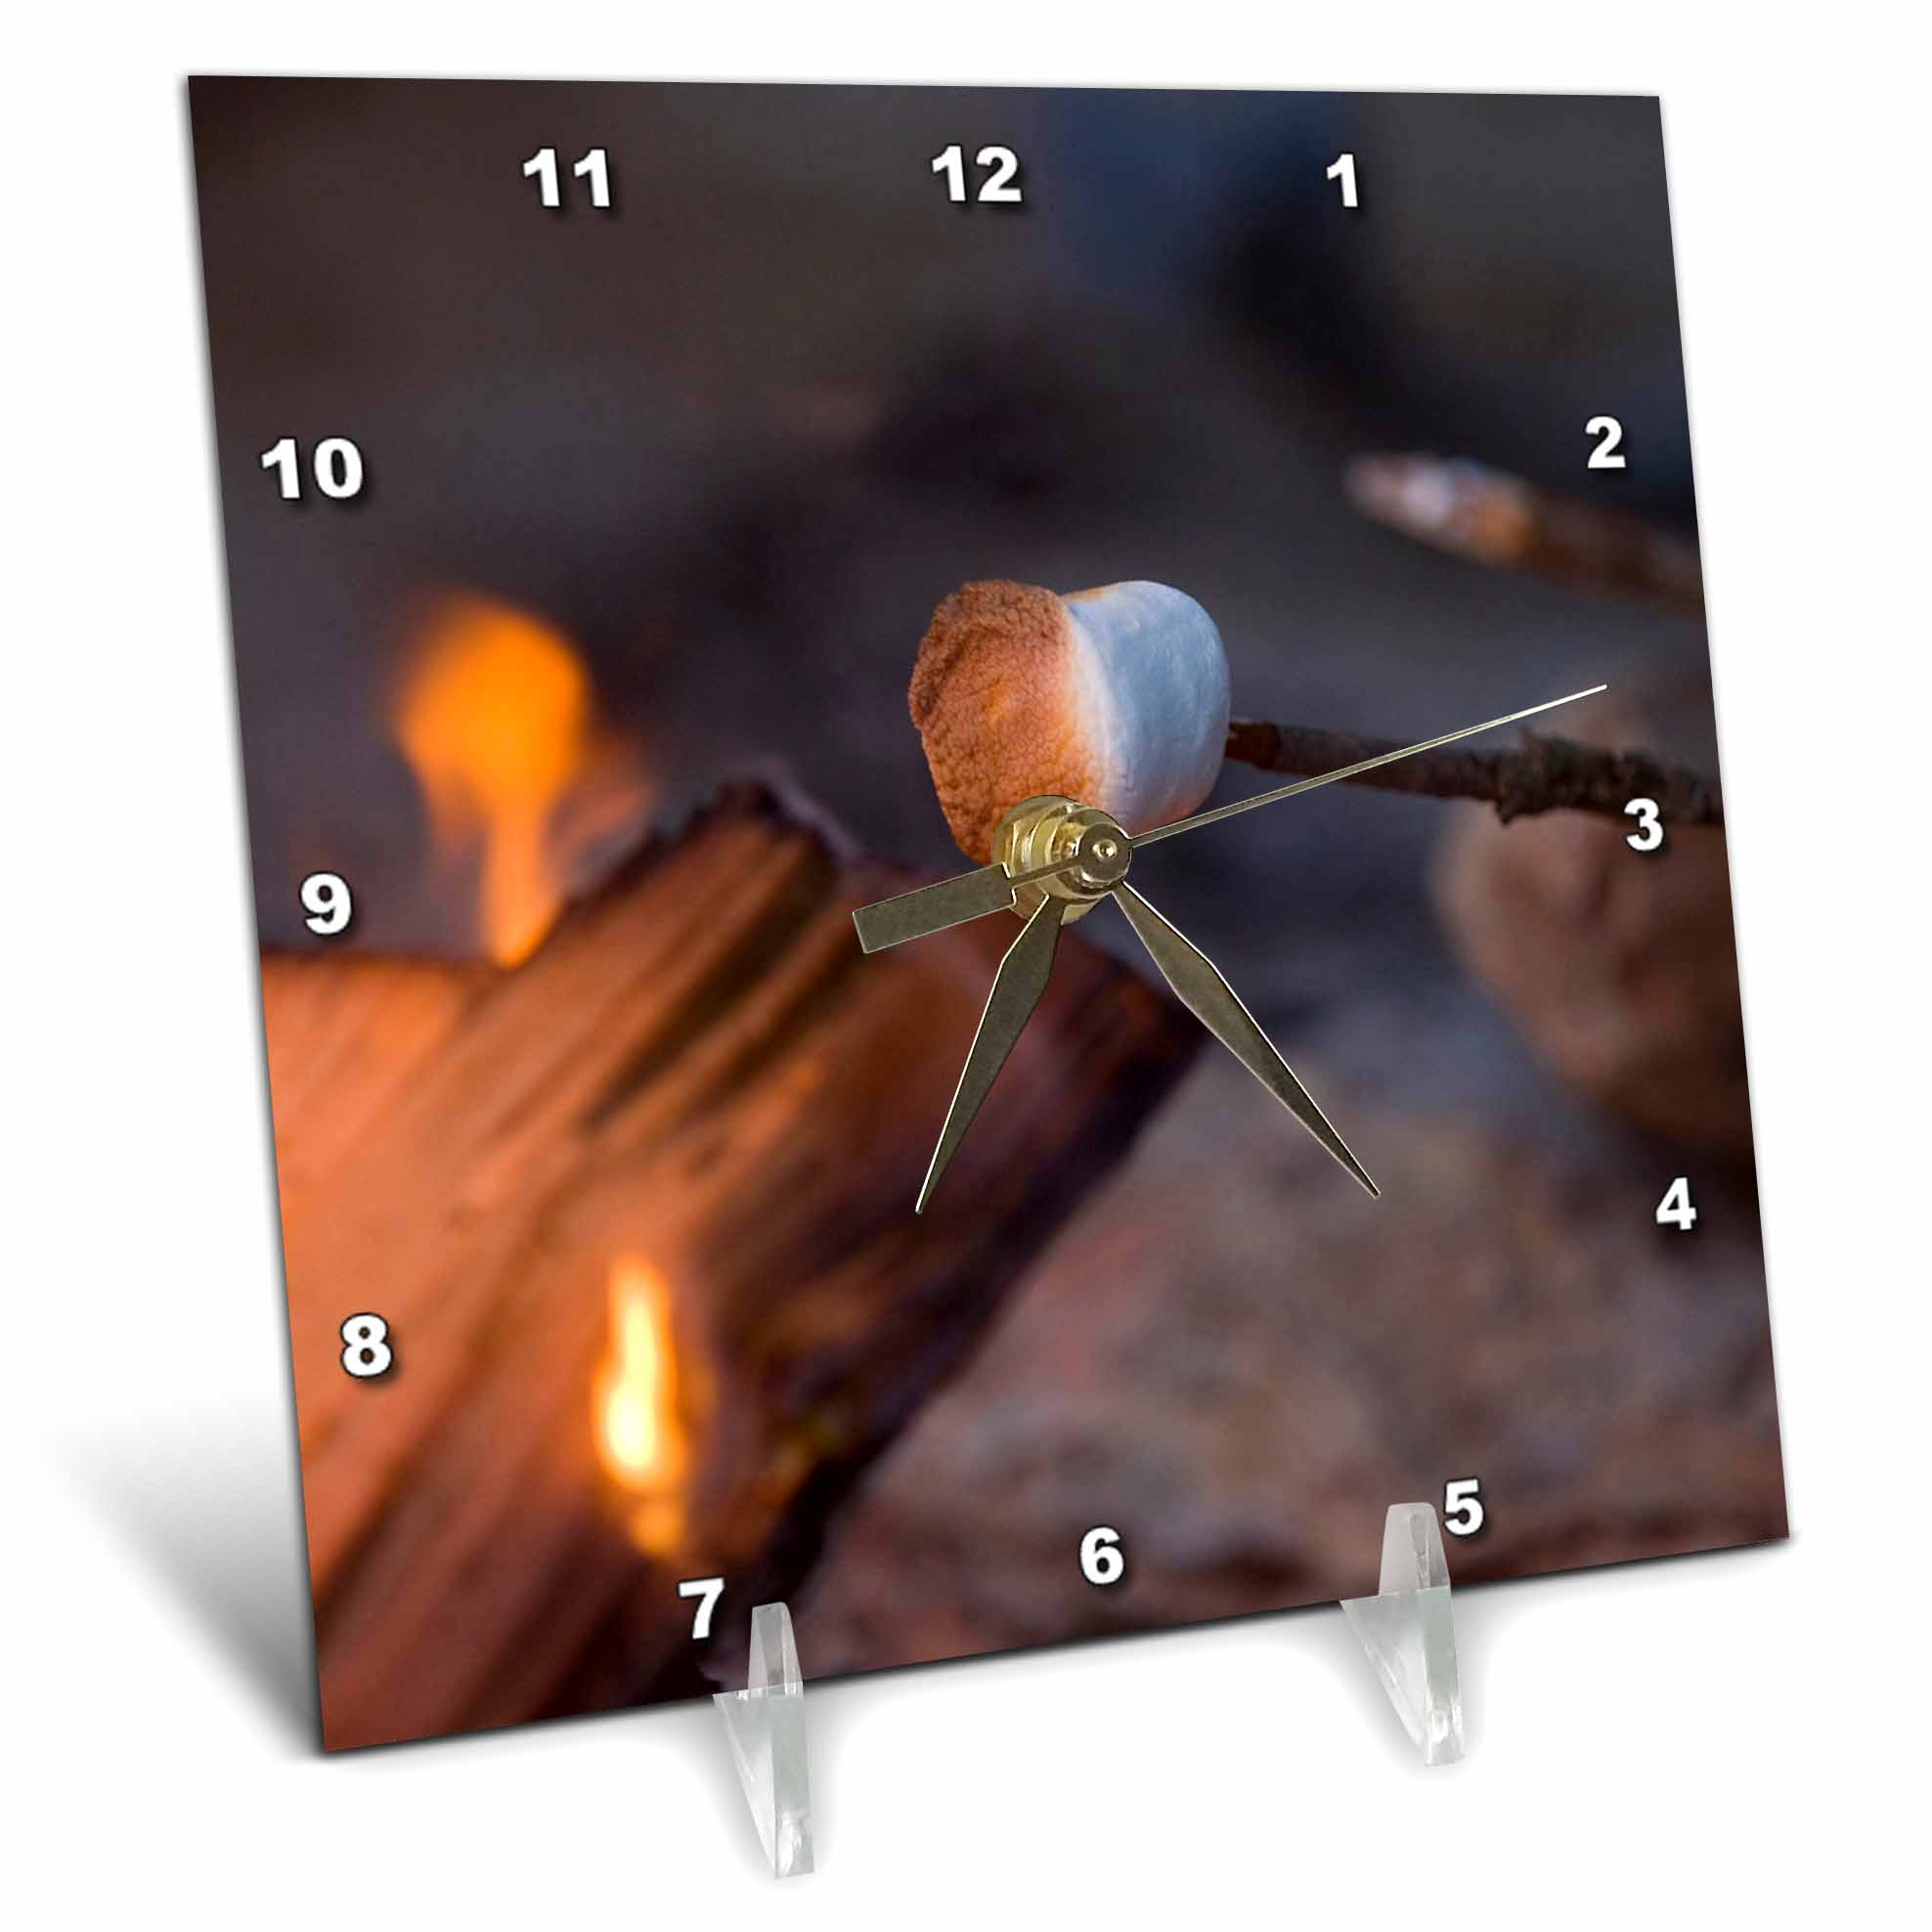 3dRose Marshmallow roasting in campfire, Whitefish Montana US27 CHA1596 Chuck Haney, Desk Clock, 6 by 6-inch by 3dRose